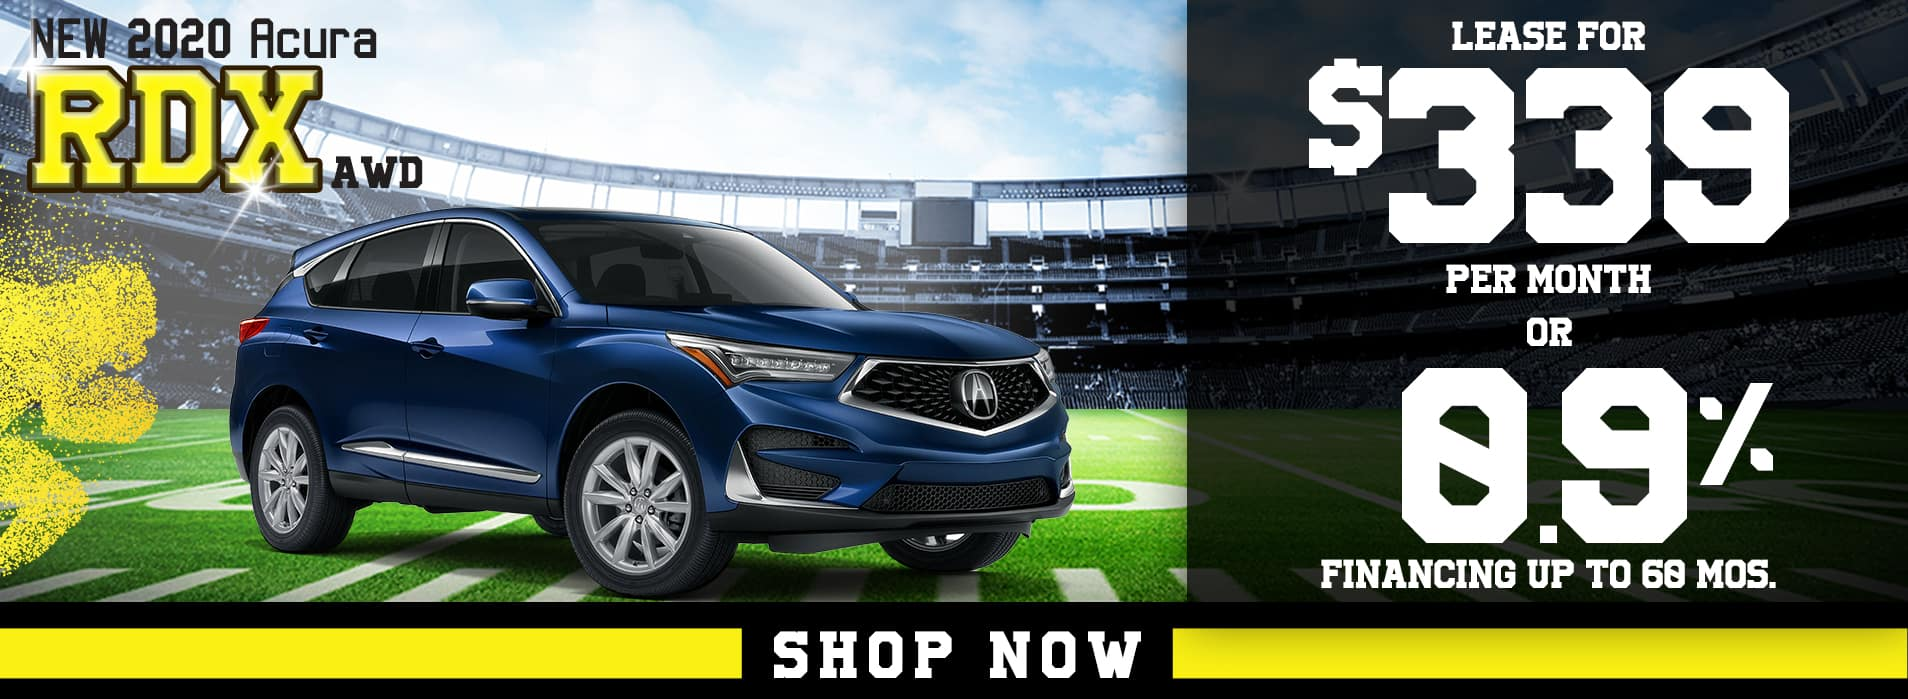 RDX | Lease for $339 per mo